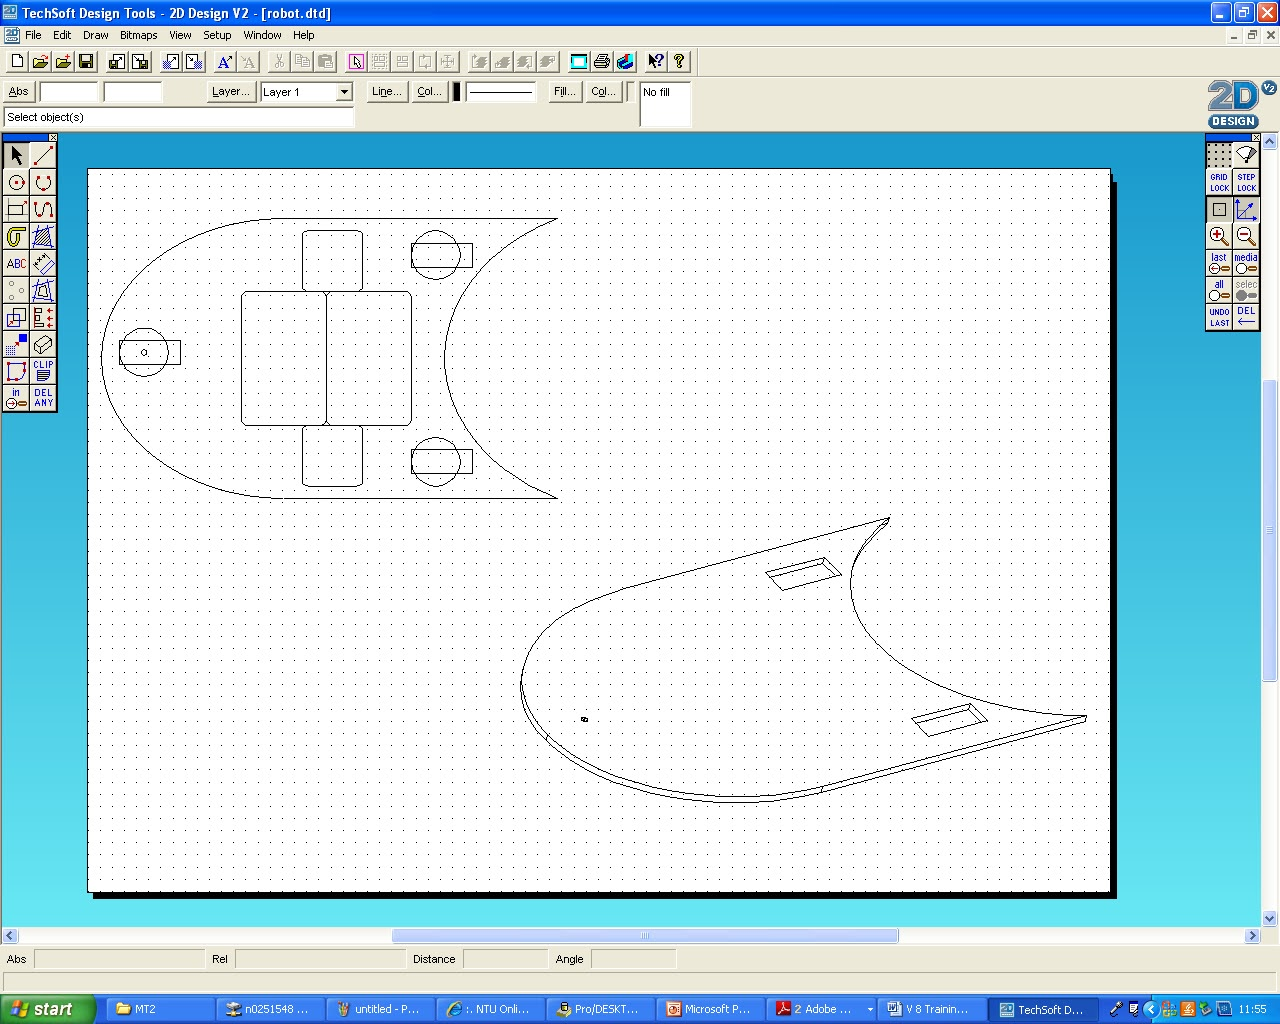 2??cad??? Nilesh Product Design 2 Module Task 2 Cad 2d Design Tools